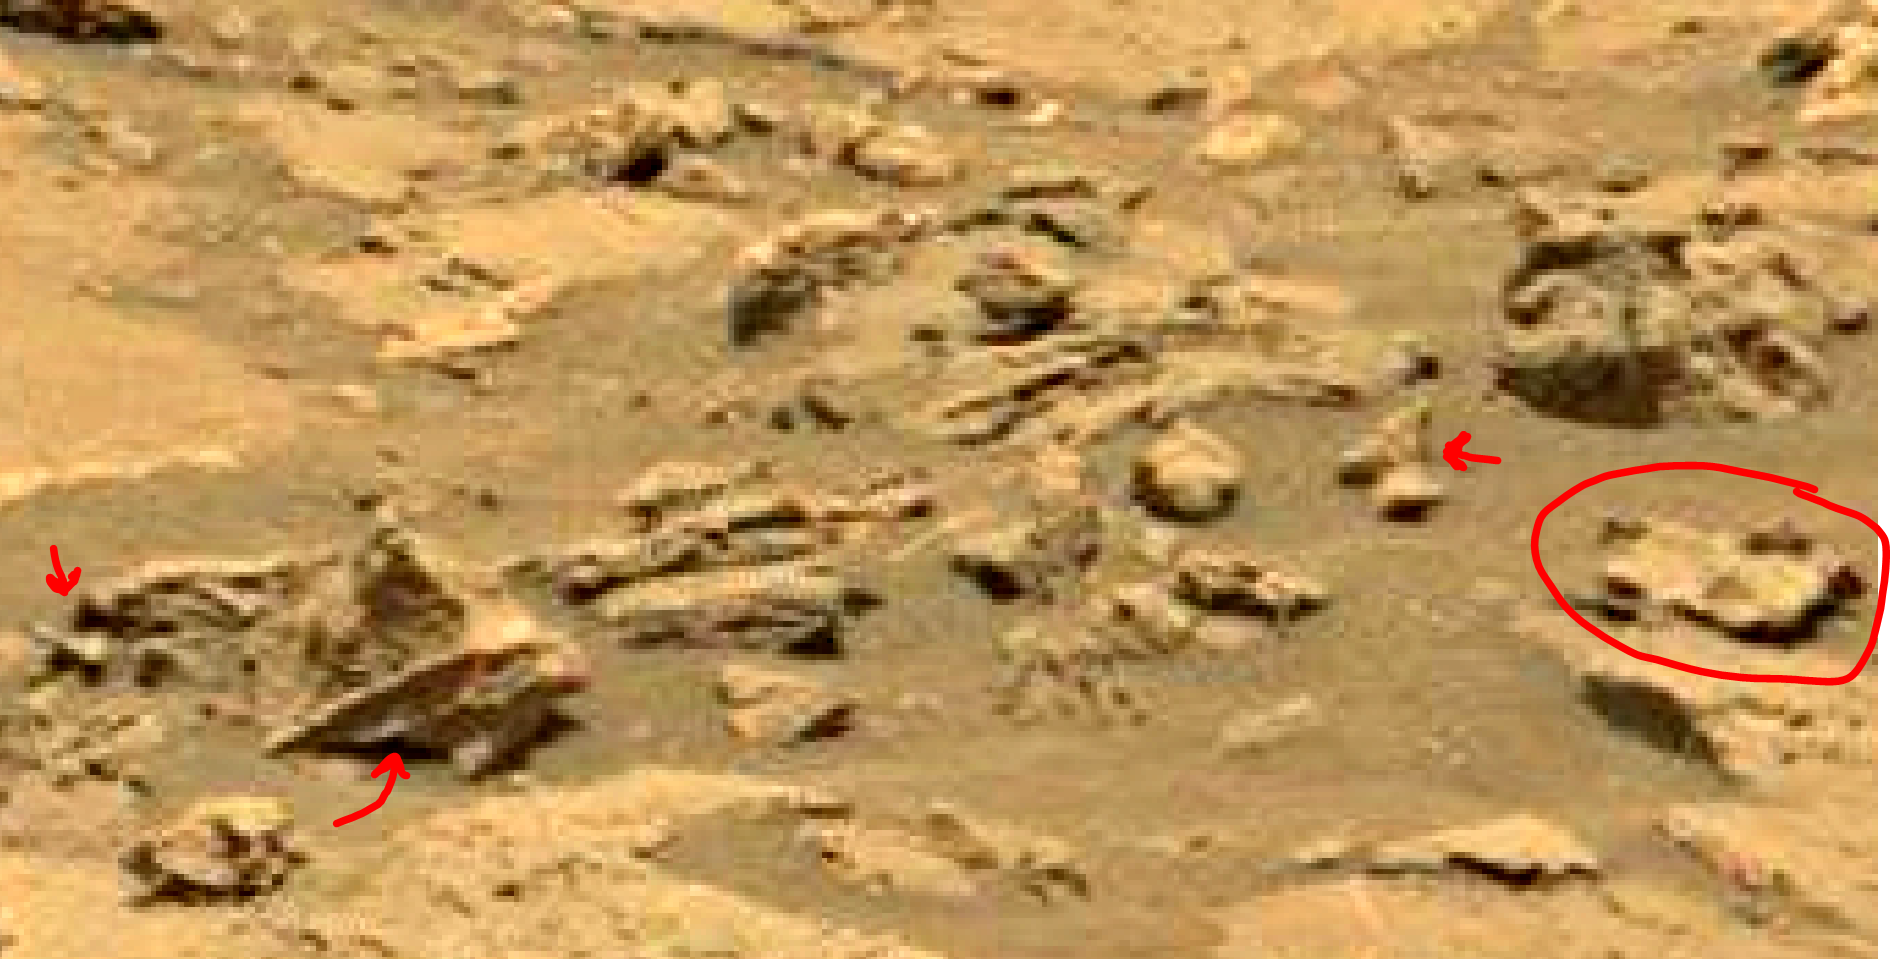 mars sol 1353 anomaly-artifacts 26 was life on mars